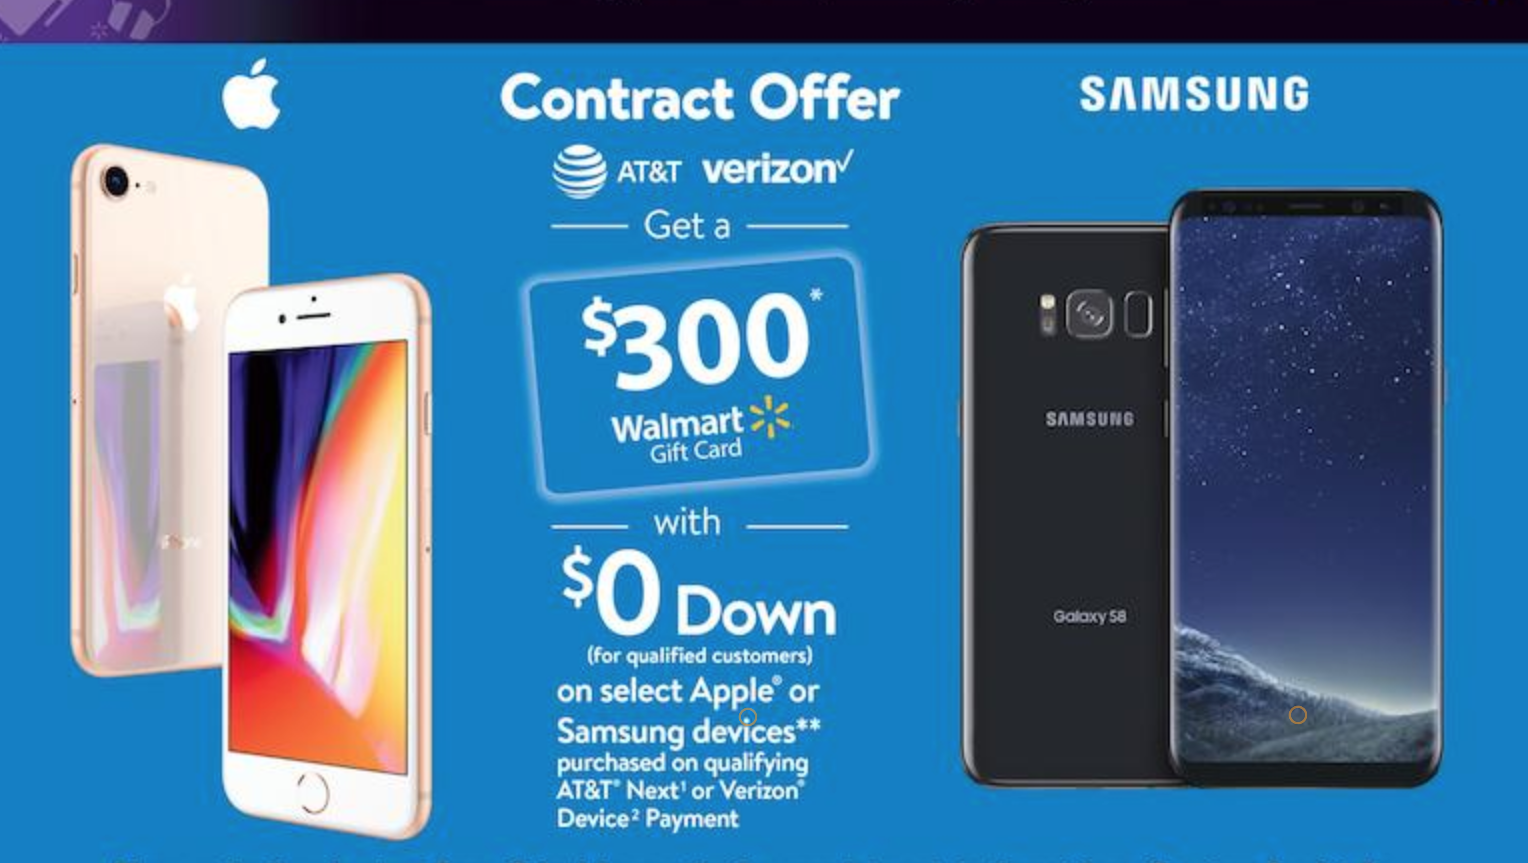 Black Friday Iphone Deal Walmart Target Best Buy Offer 200 300 Off